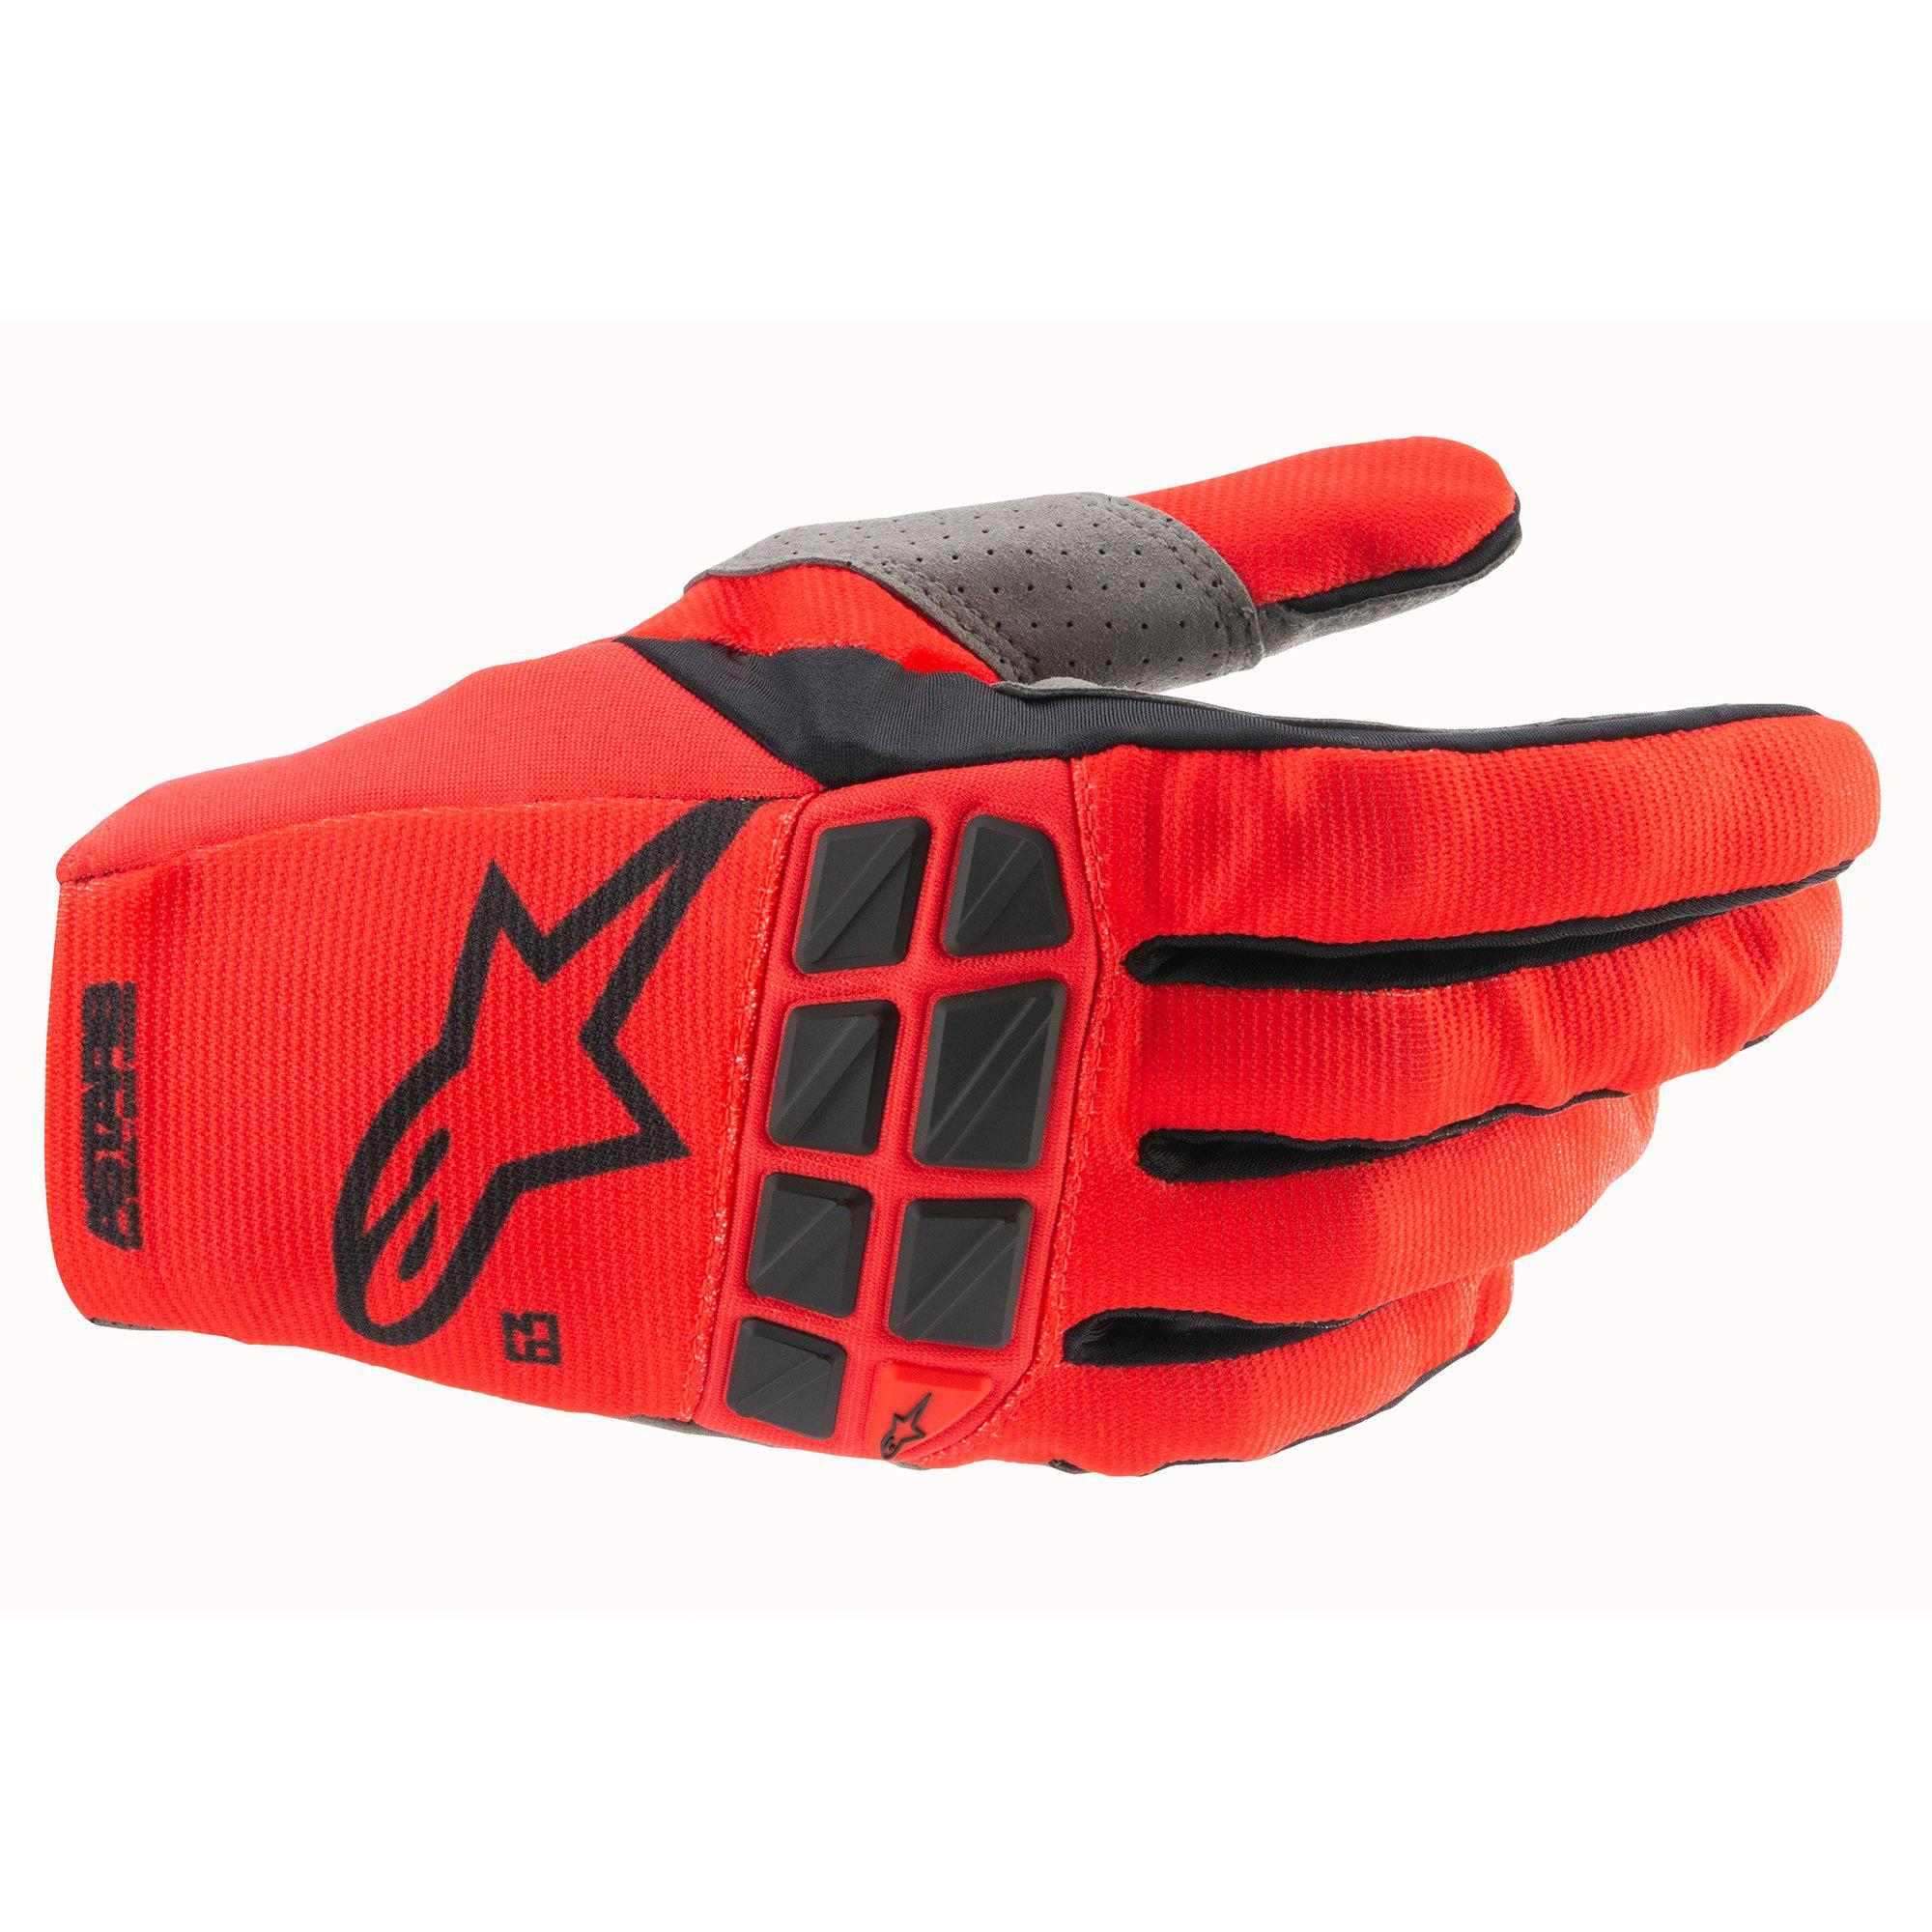 2021 Racefend Gloves